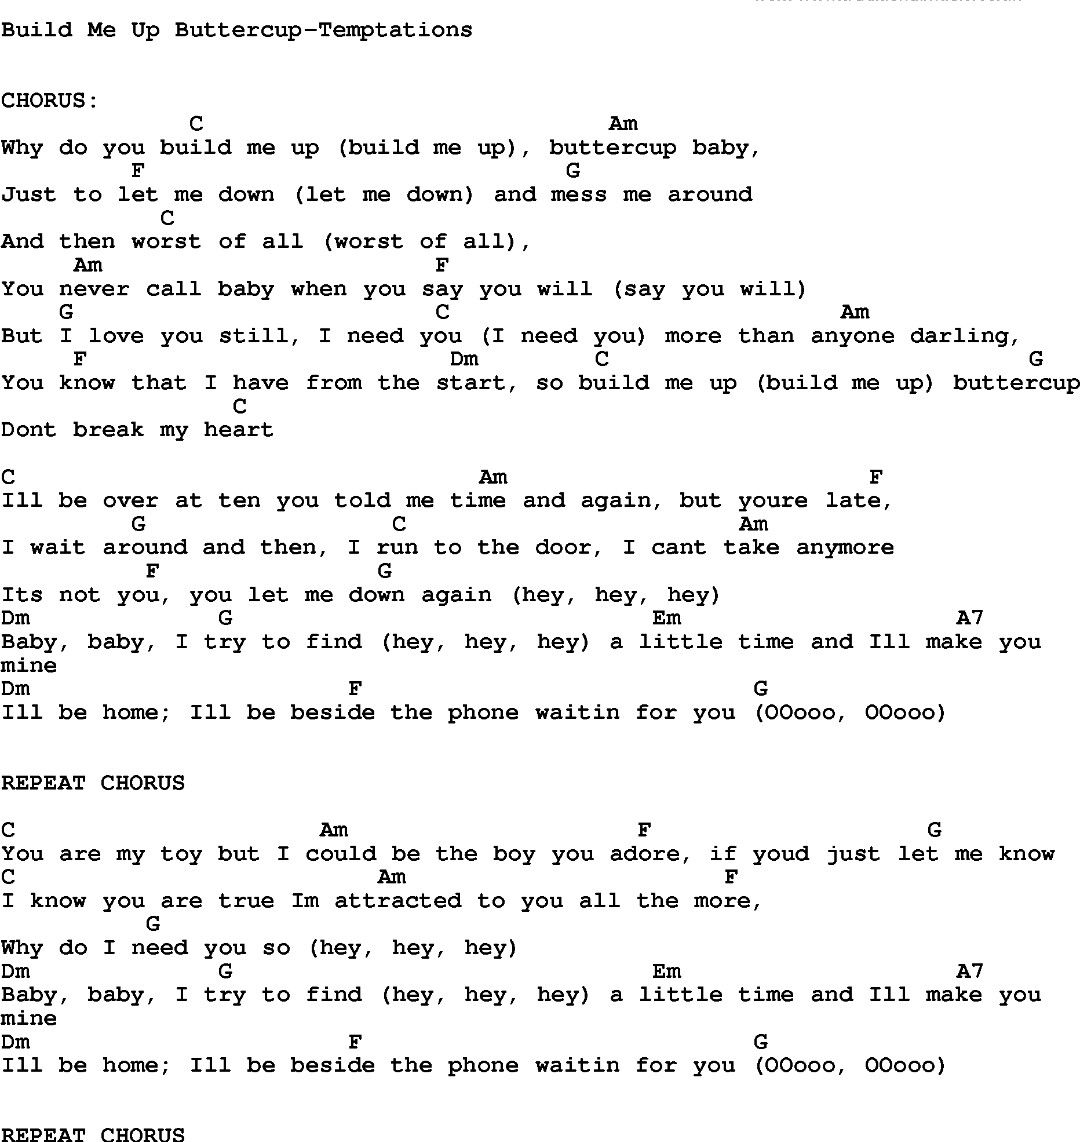 Pin by ashley vance on ukulele pinterest hey jude song build me up buttercup by temptations song lyric for vocal performance plus accompaniment chords for ukulele guitar banjo etc hexwebz Images